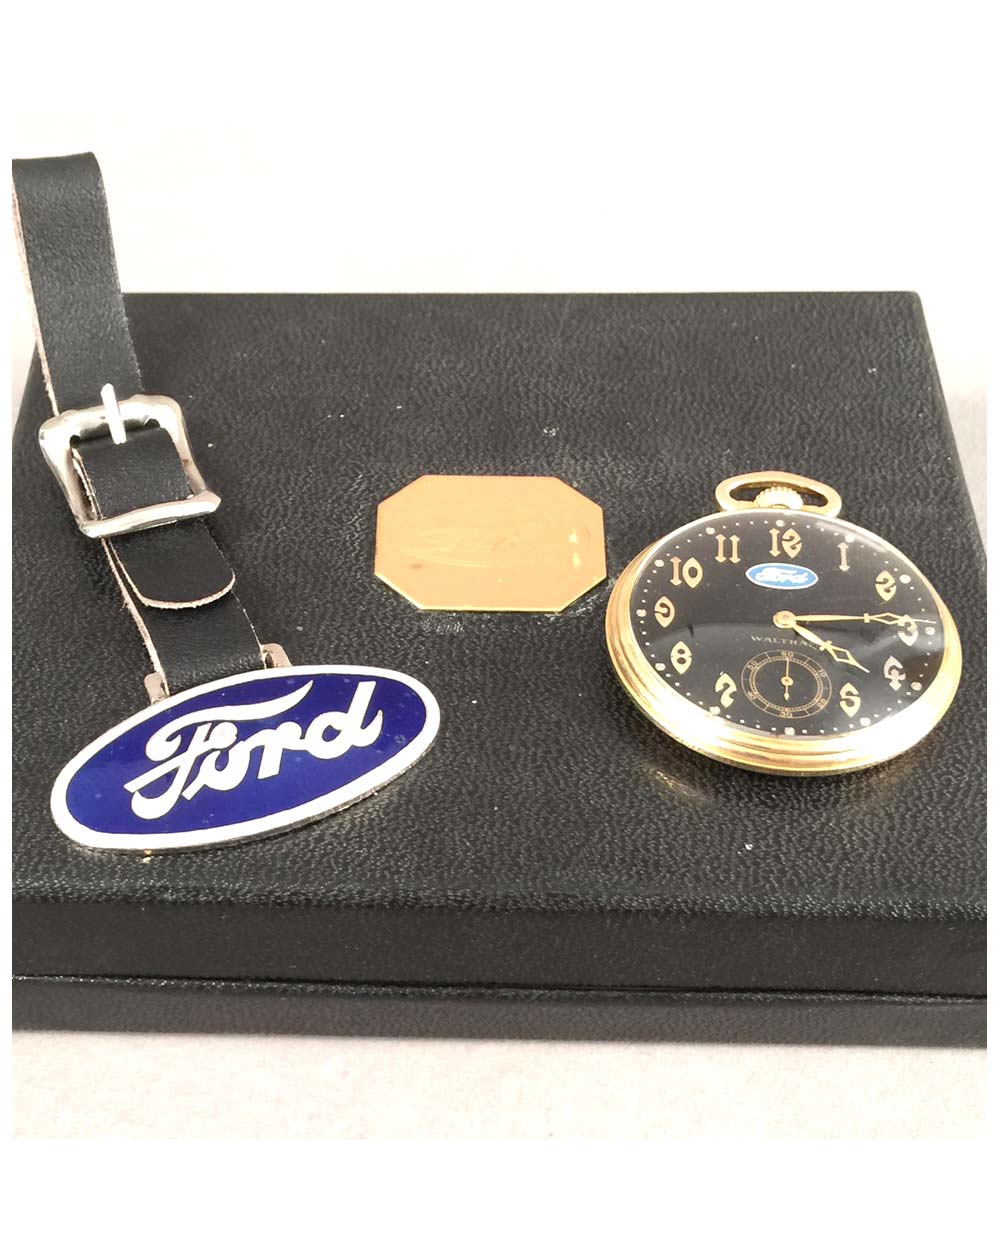 Ford pocket watch By Waltham